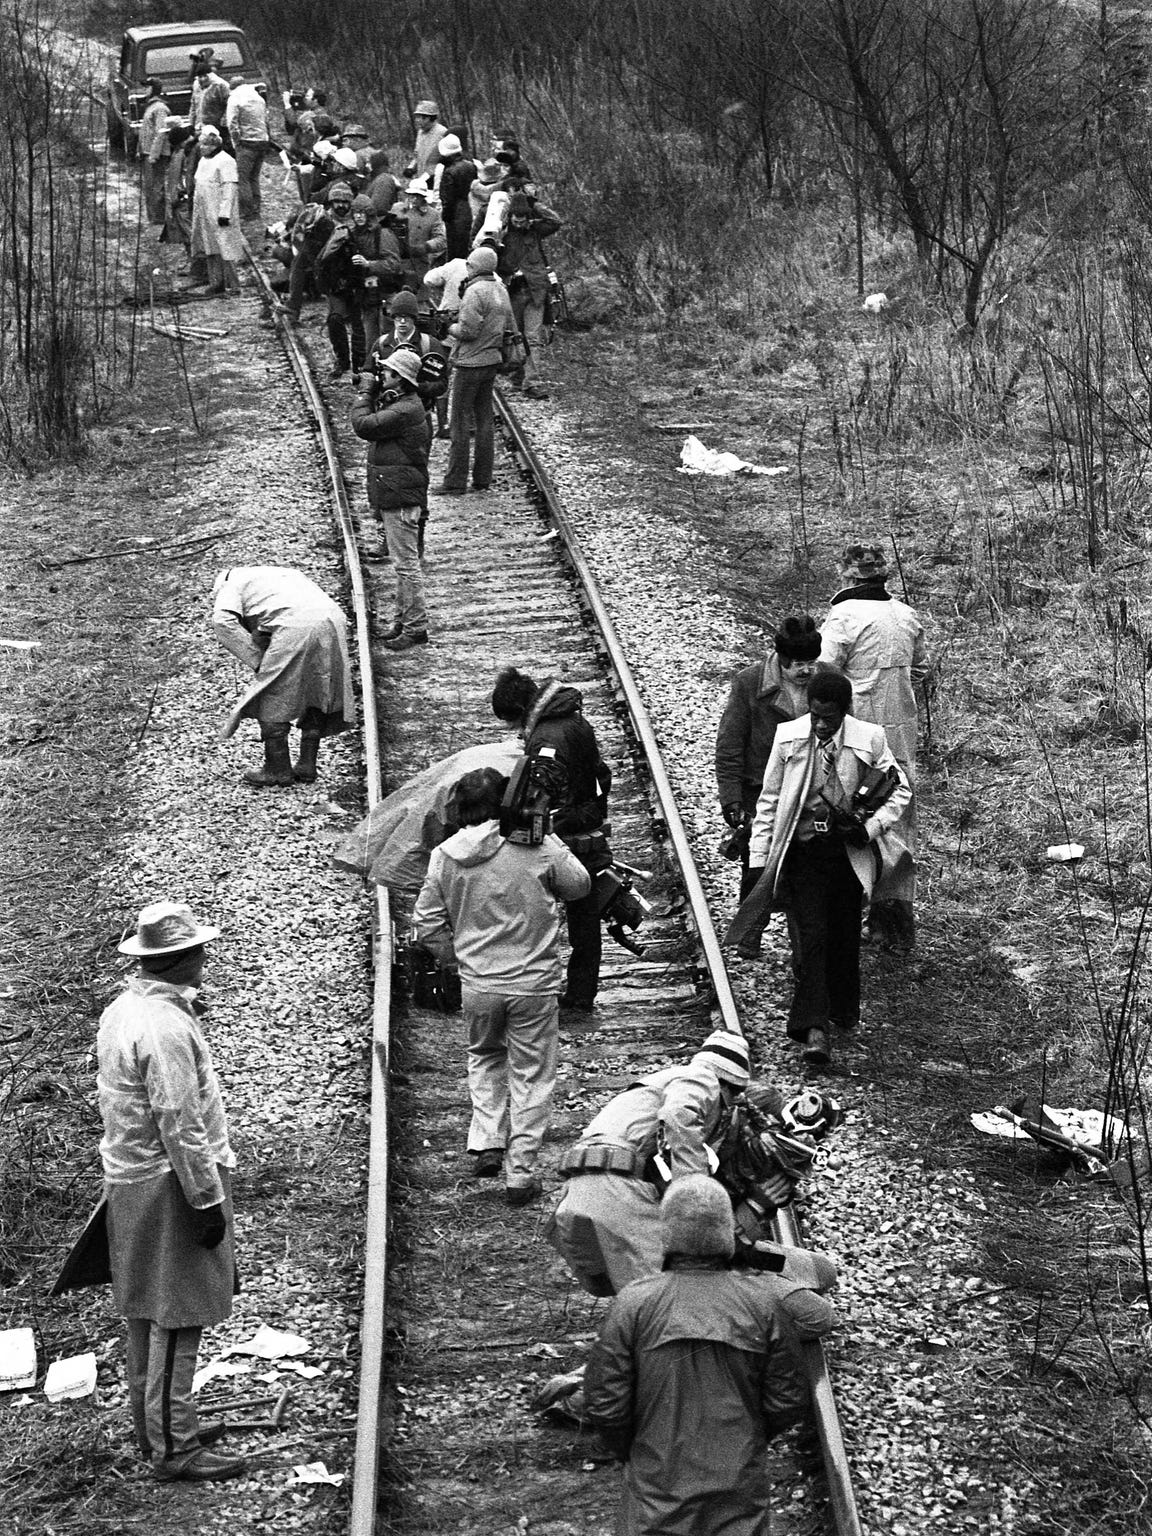 On December 13, 1977, the University of Evansville men's basketball team, coaches/staff, and fans, boarded a chartered DC-3 plane. Ninety seconds after take-off the plane crashed, killing everyone on board. The site of the crash was a hilly area, with few access roads, but there was a train track nearby. A railroad car was brought to the site, and the victims were transported to a temporary morgue at the C.K. Newsome Center at 100 Walnut St., which was on the train line.